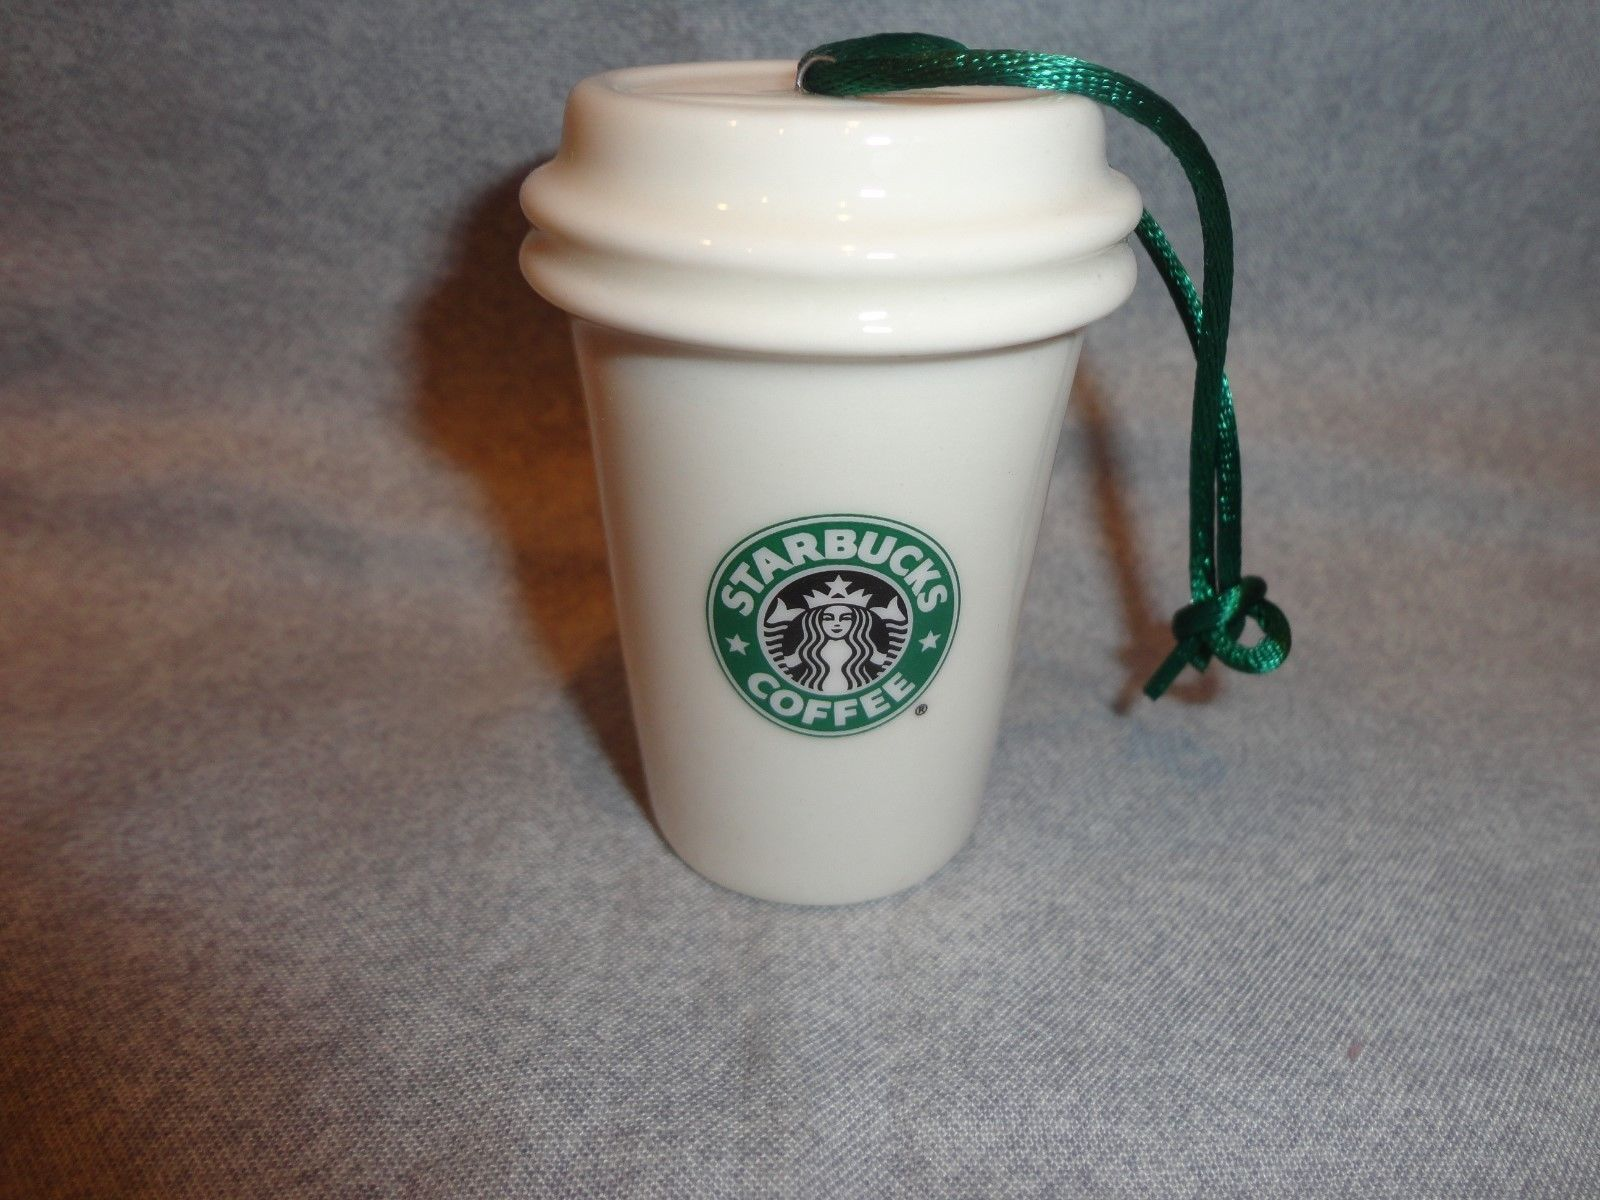 STARBUCKS 2011 GREEN AND WHITE TO GO CUP ORNAMENT CERAMIC 2 LOGO NO PACKAGING